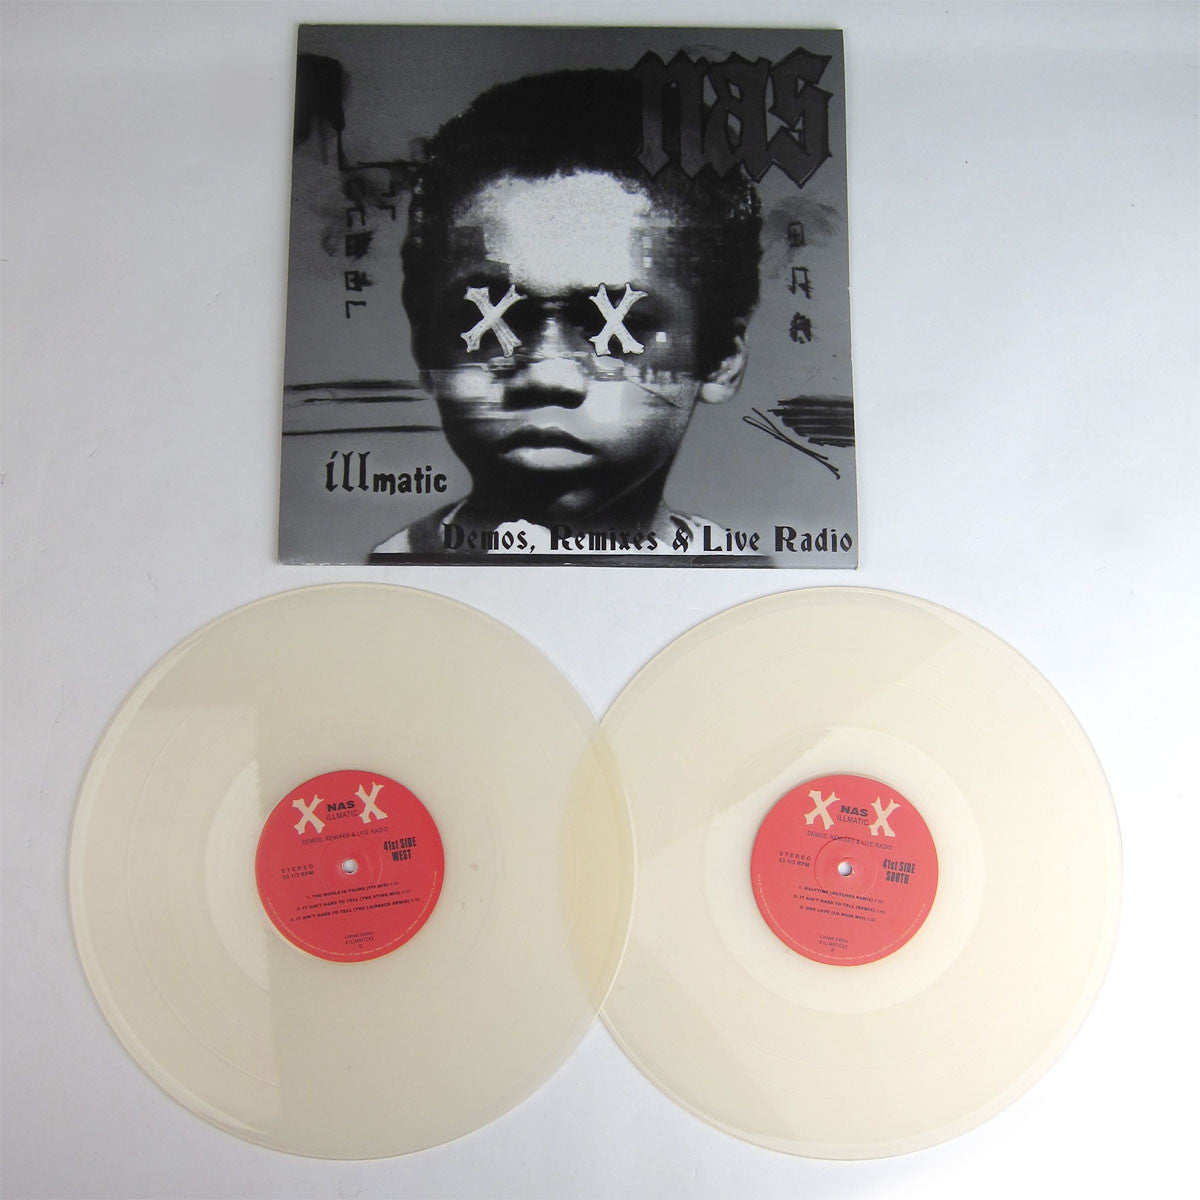 Nas: Illmatic XX - Demos, Remixes & Live Radio (Colored Vinyl) Vinyl 2LP detail